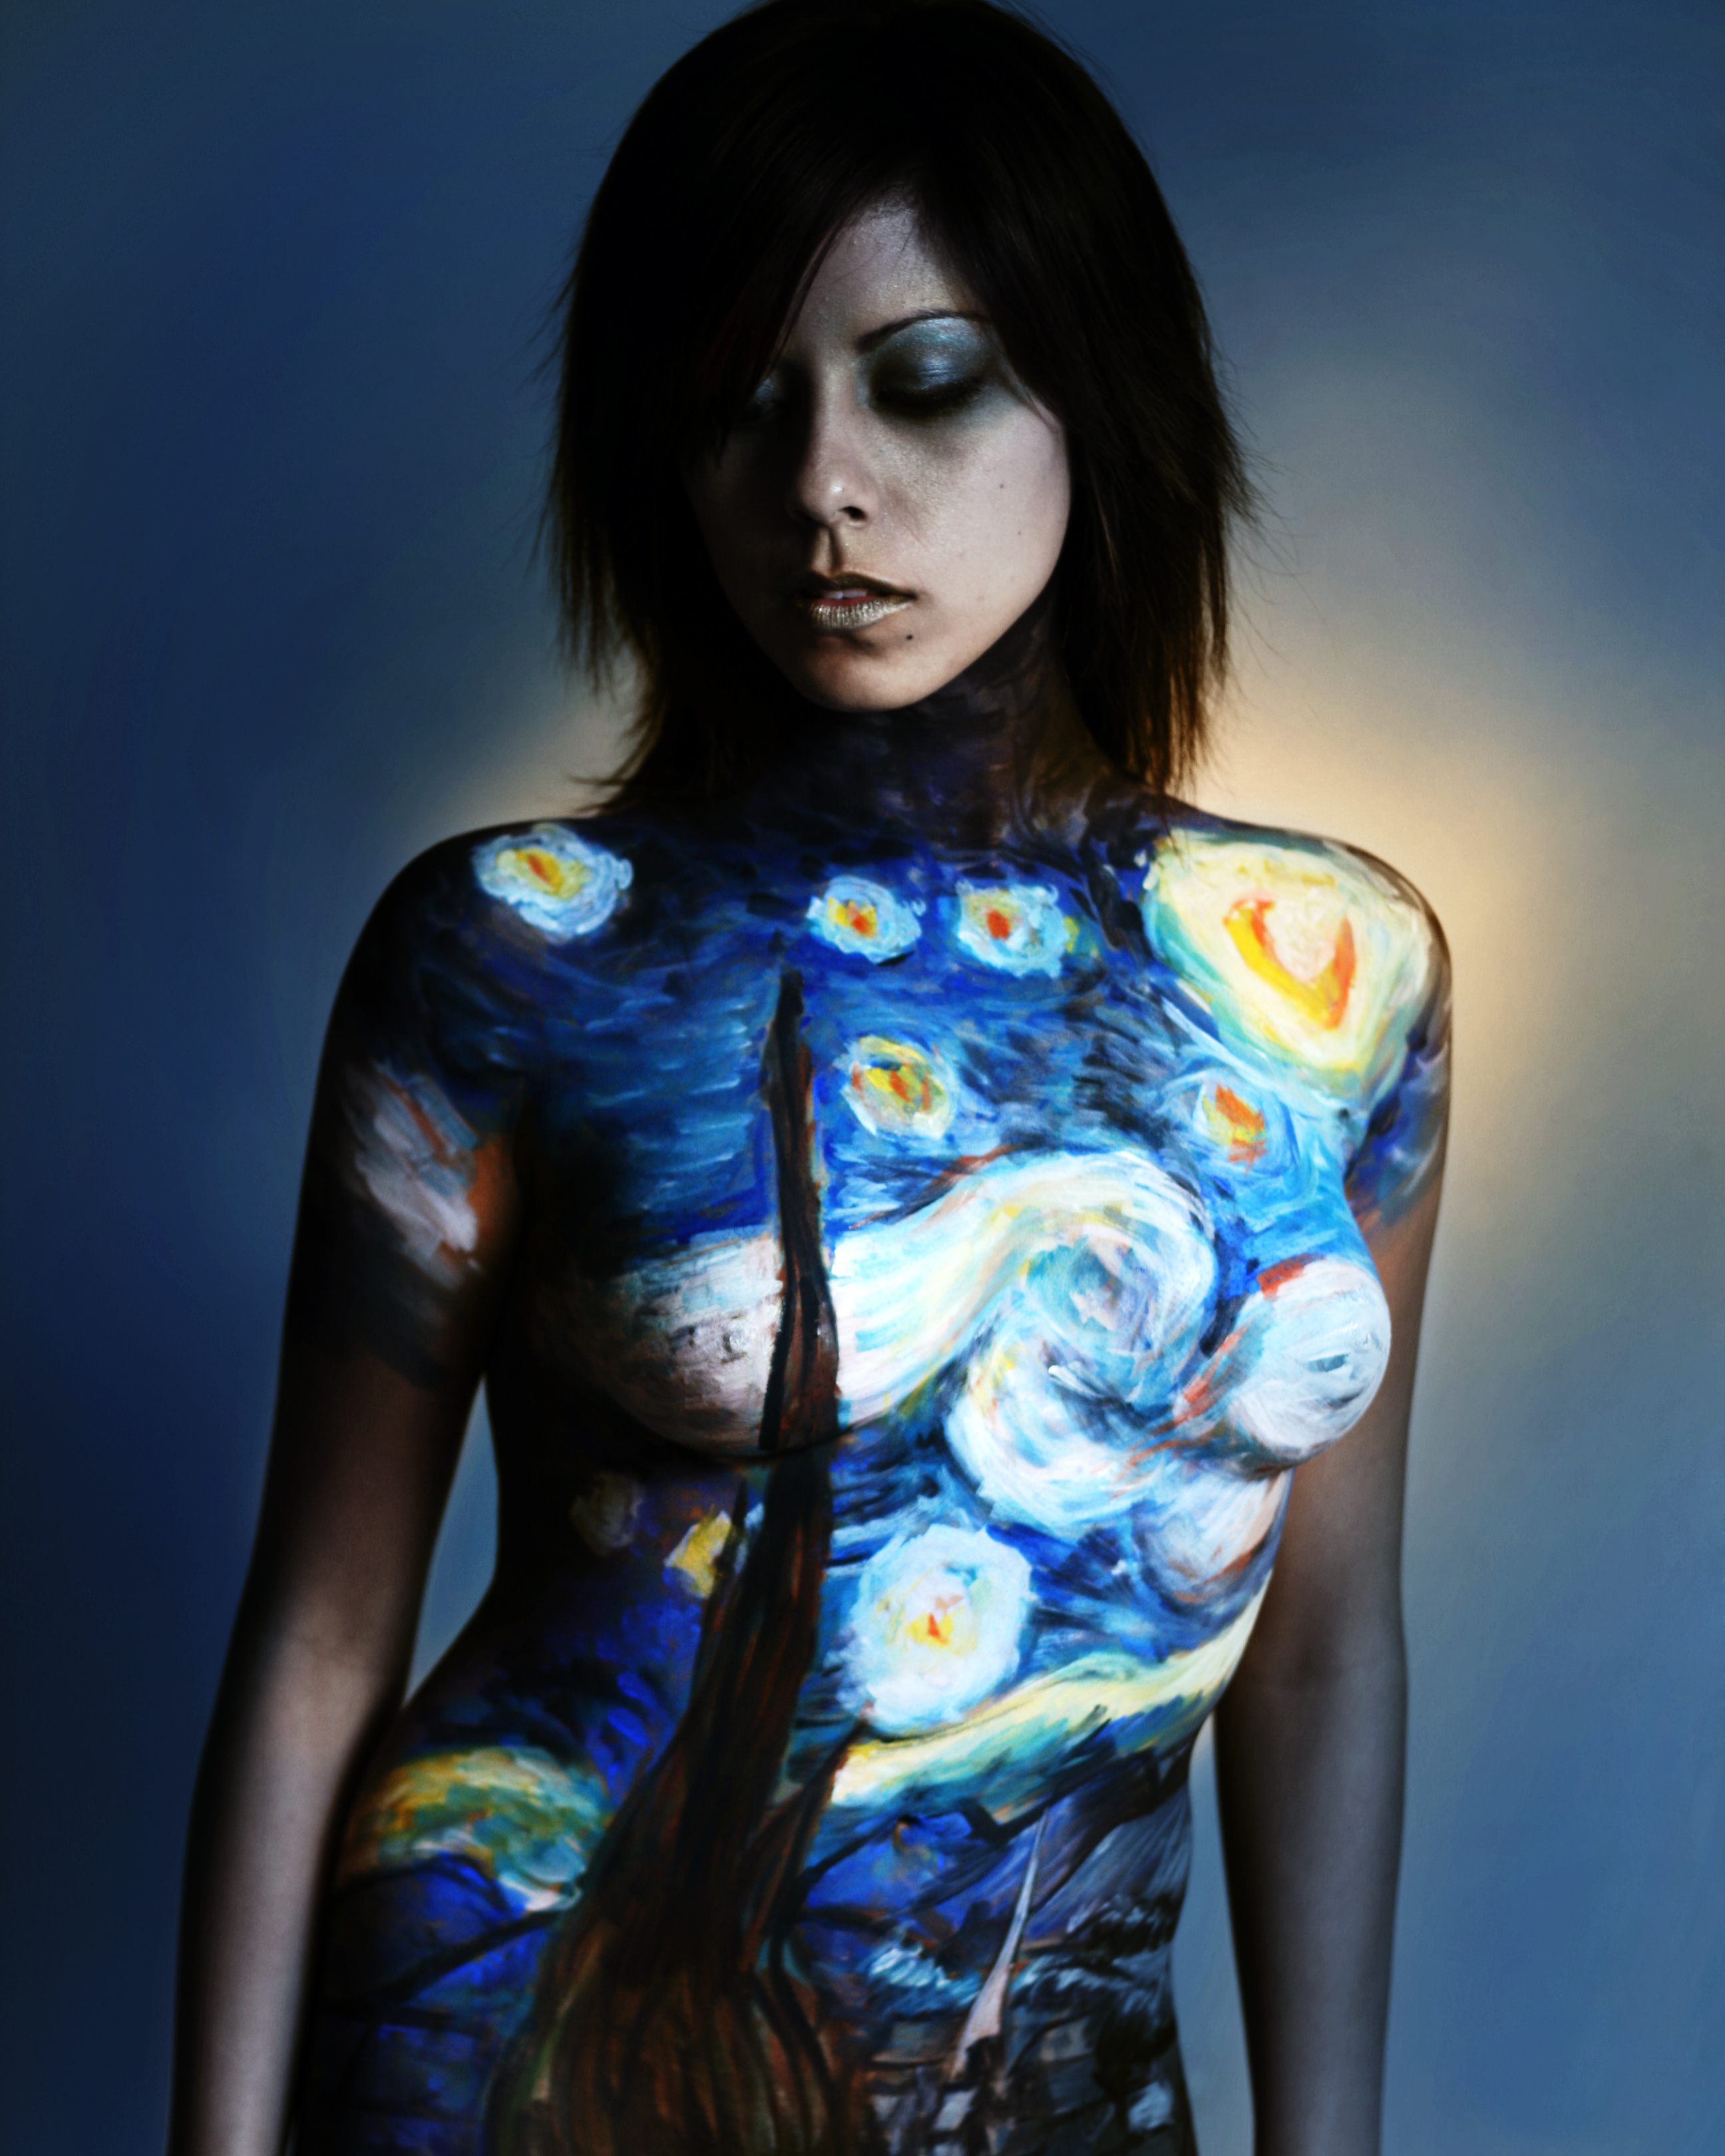 Description Starry night body painting.jpg